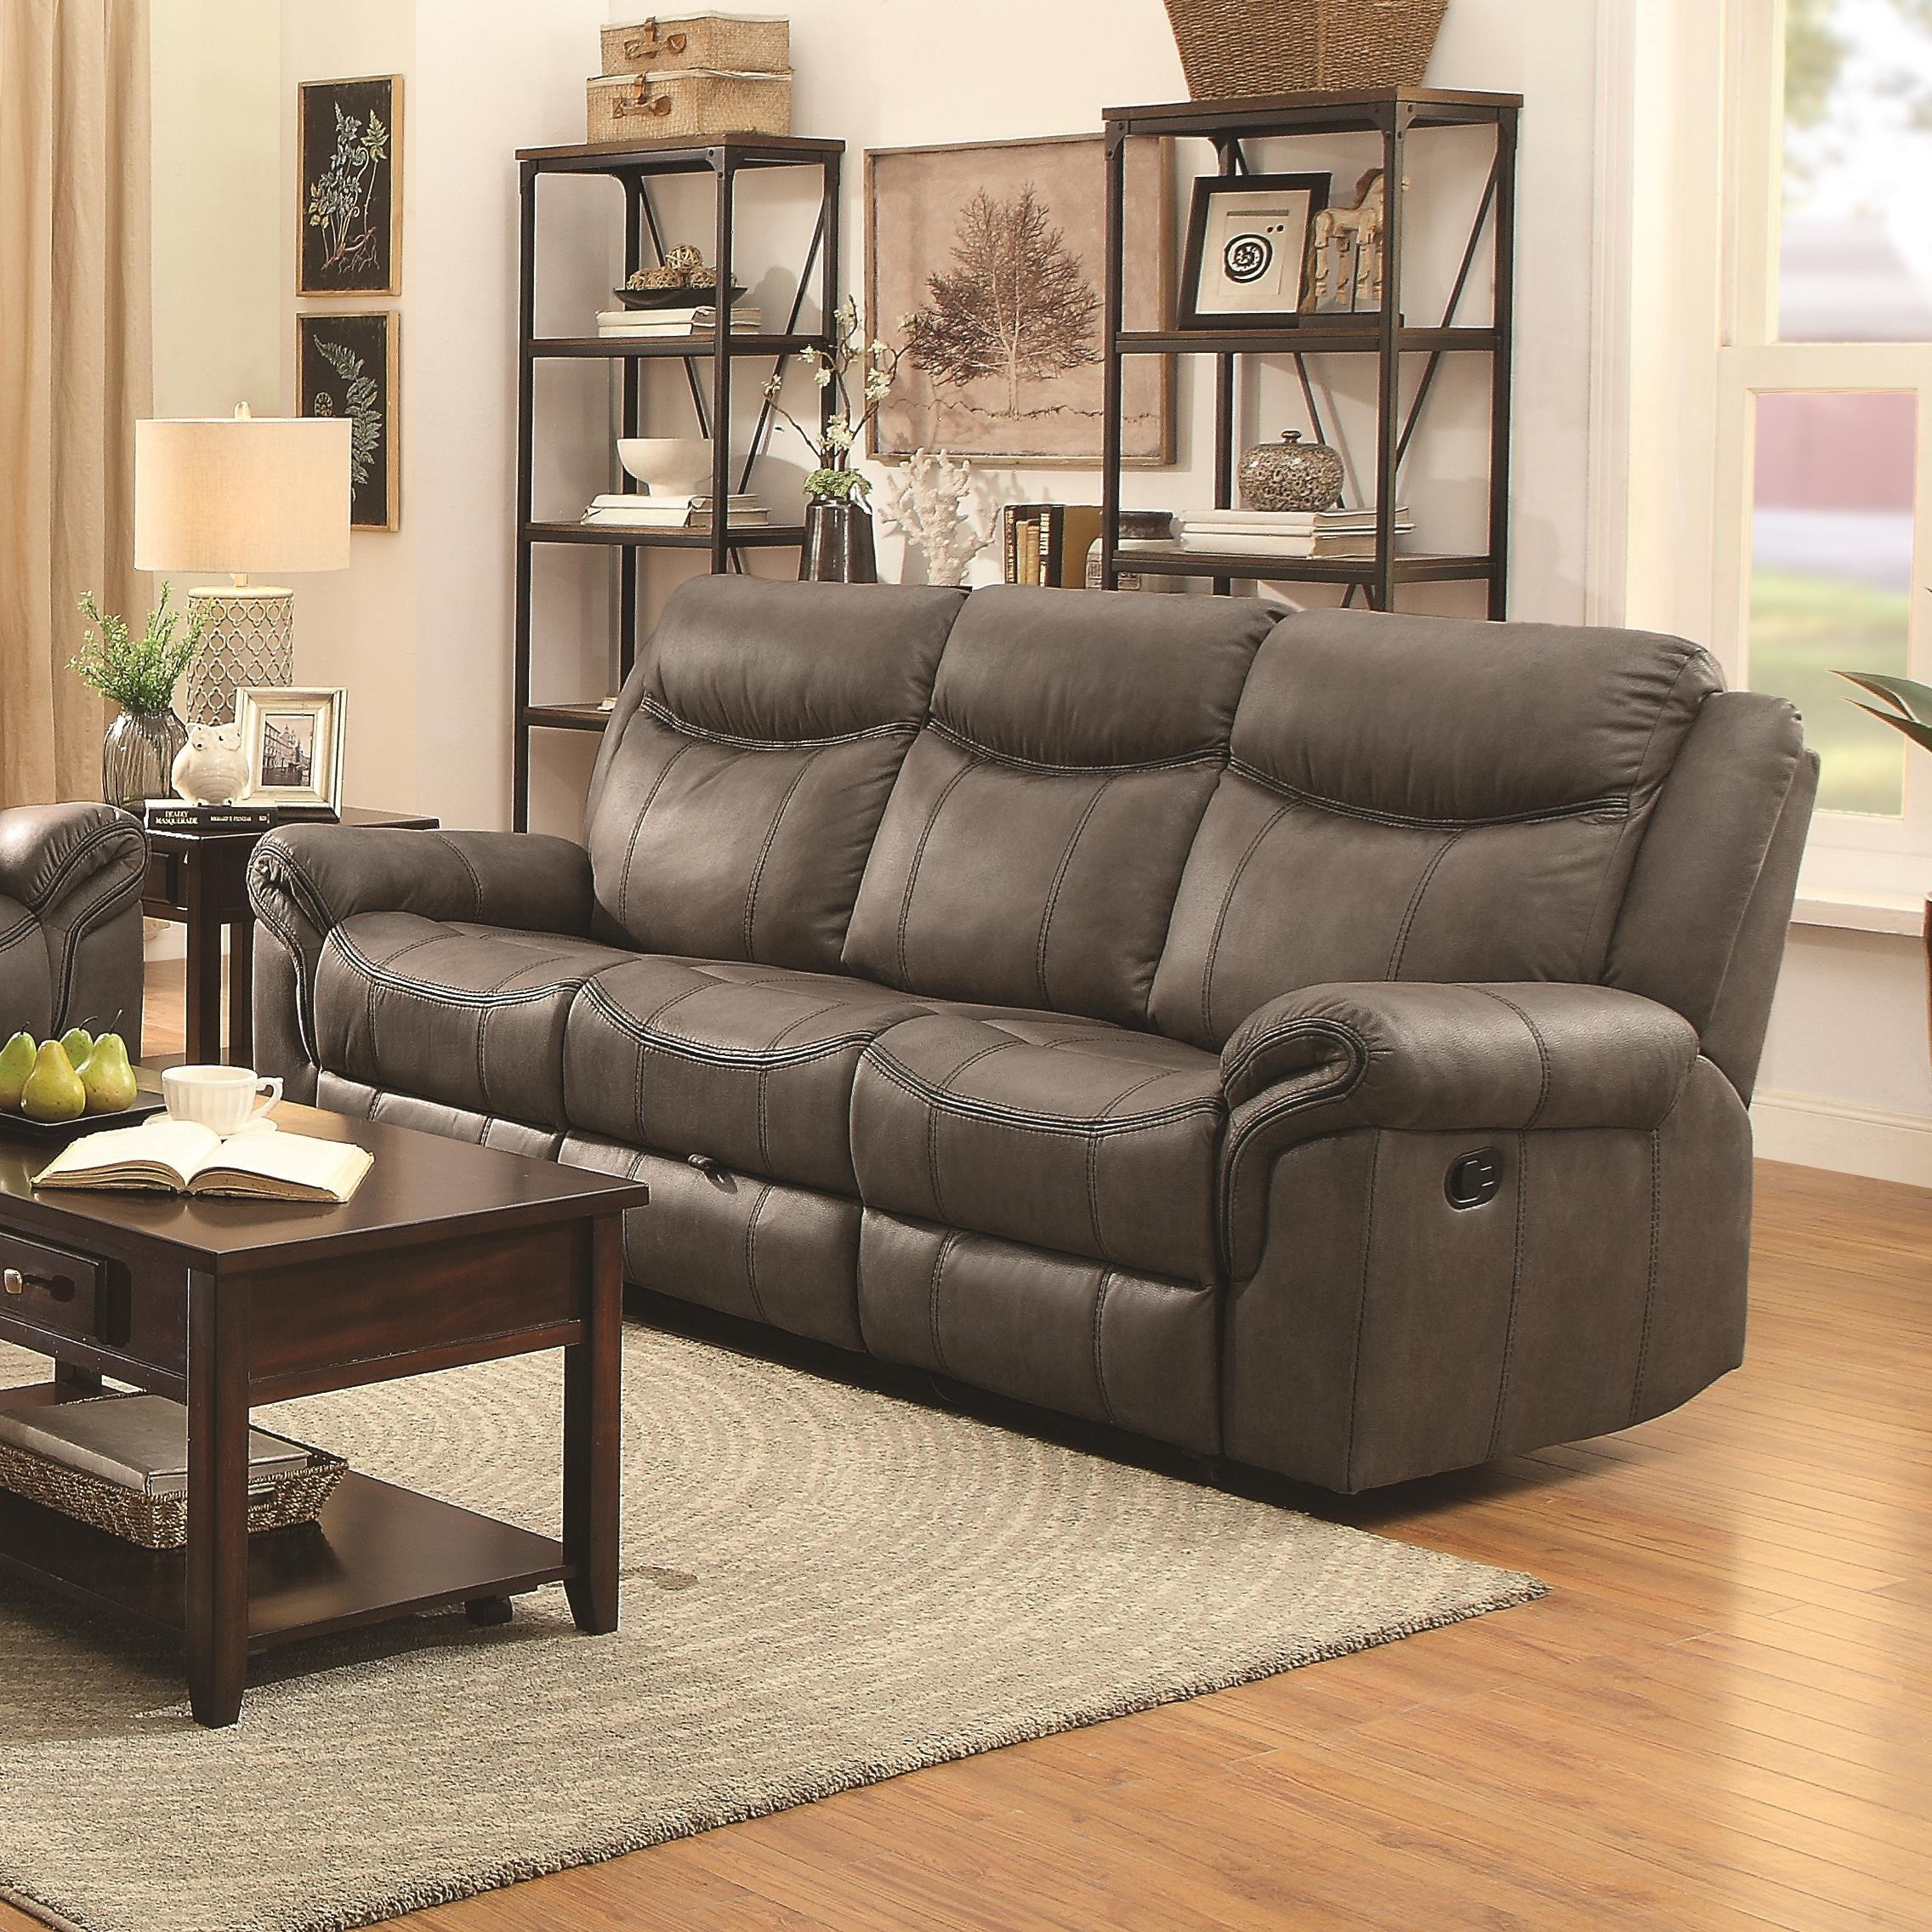 Coaster Sawyer Motion Motion Sofa with Pillow Arms and